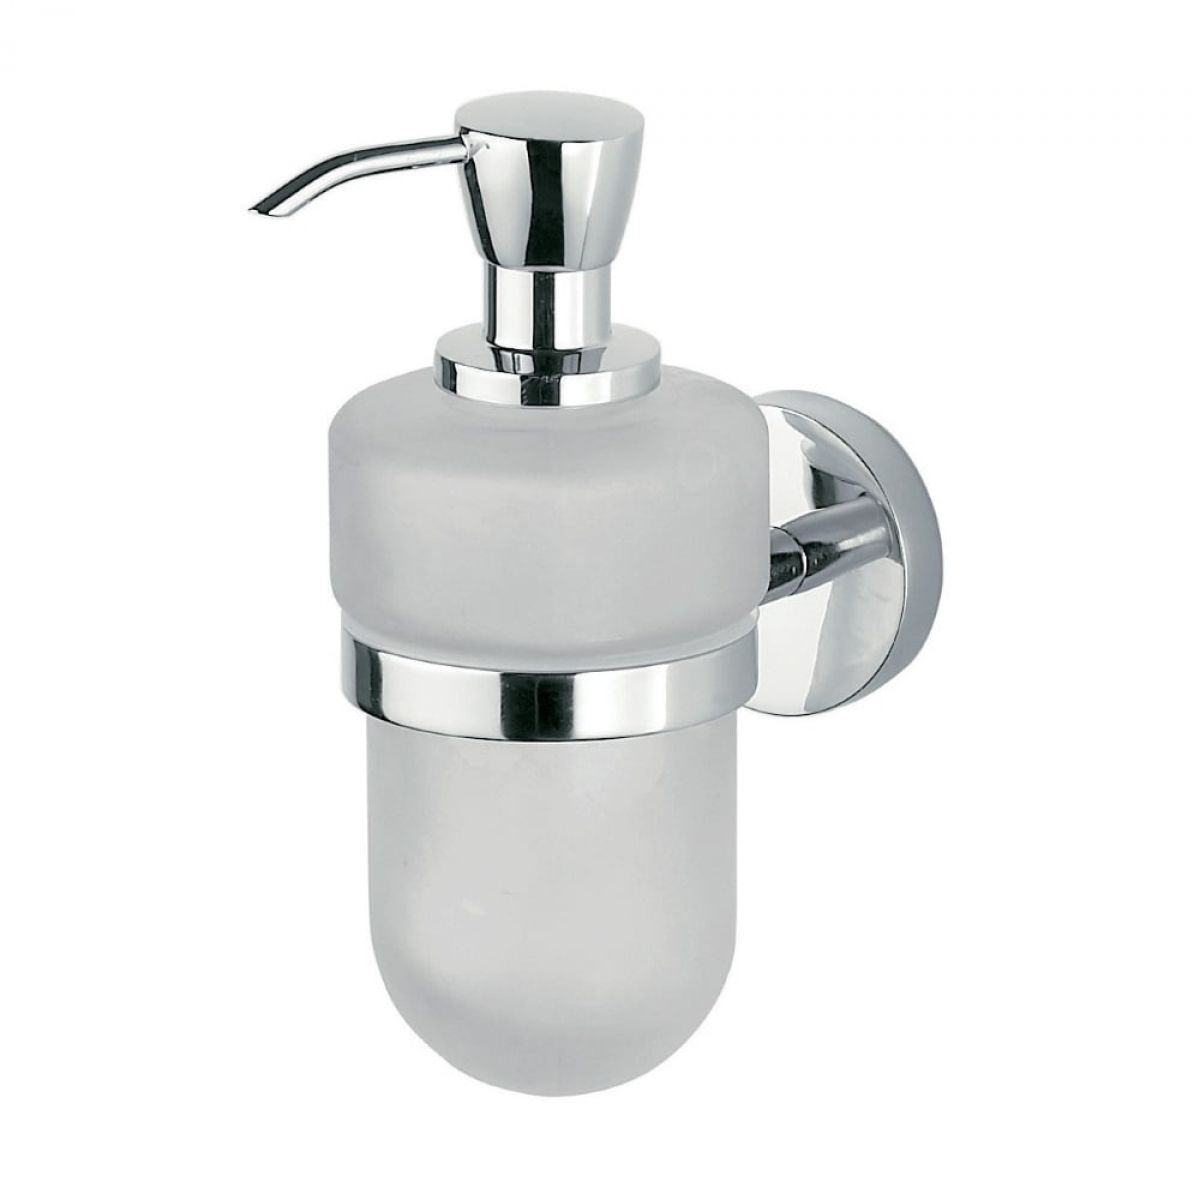 Inda Forum Wall Mounted Liquid Soap Dispenser 7 X 17h X 13cm Uk Bathrooms